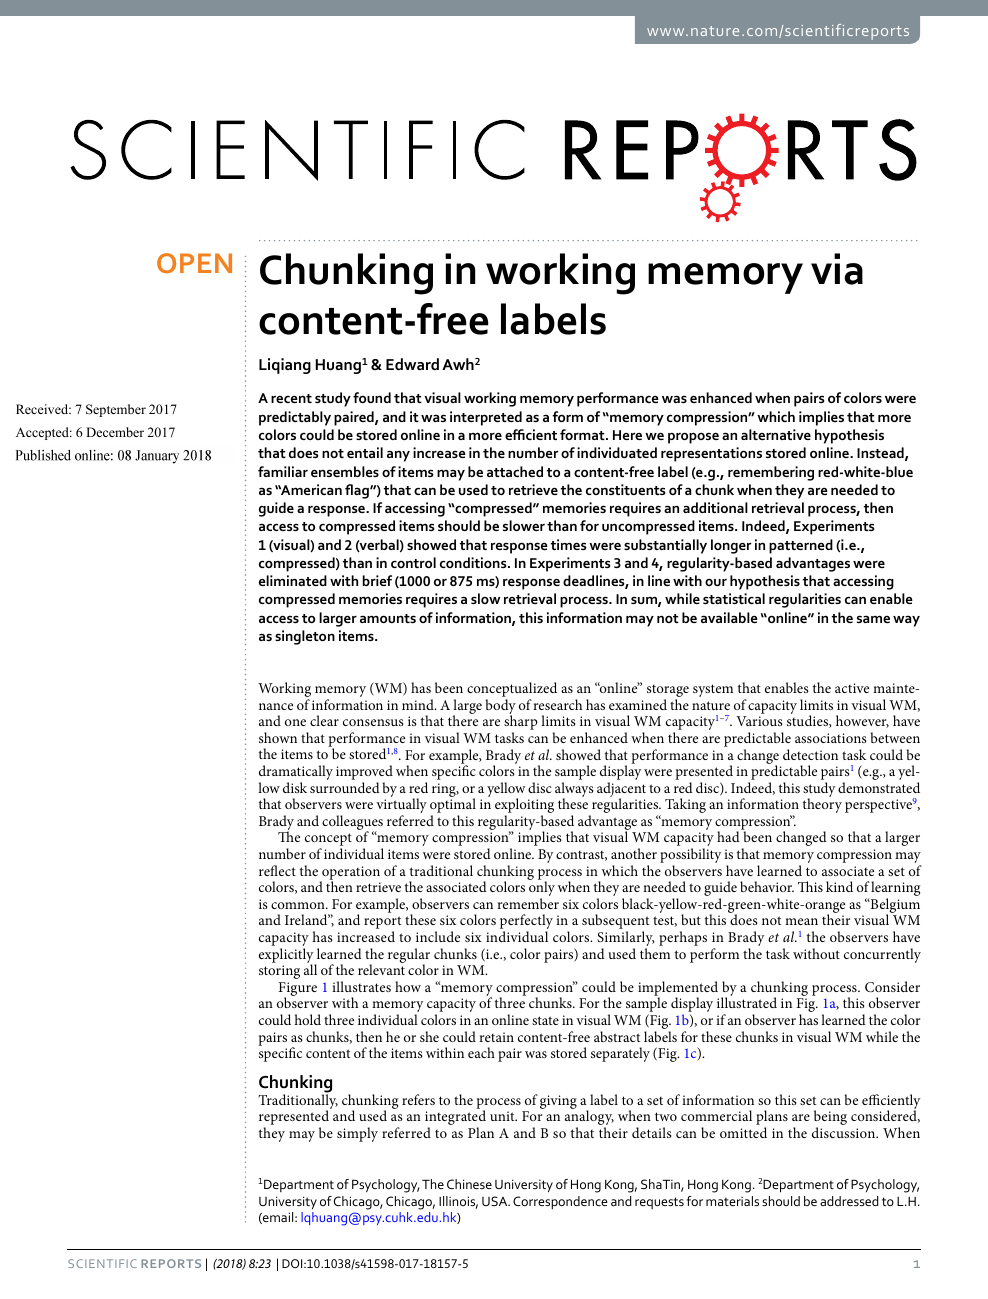 Chunking in working memory via content-free labels – topic of